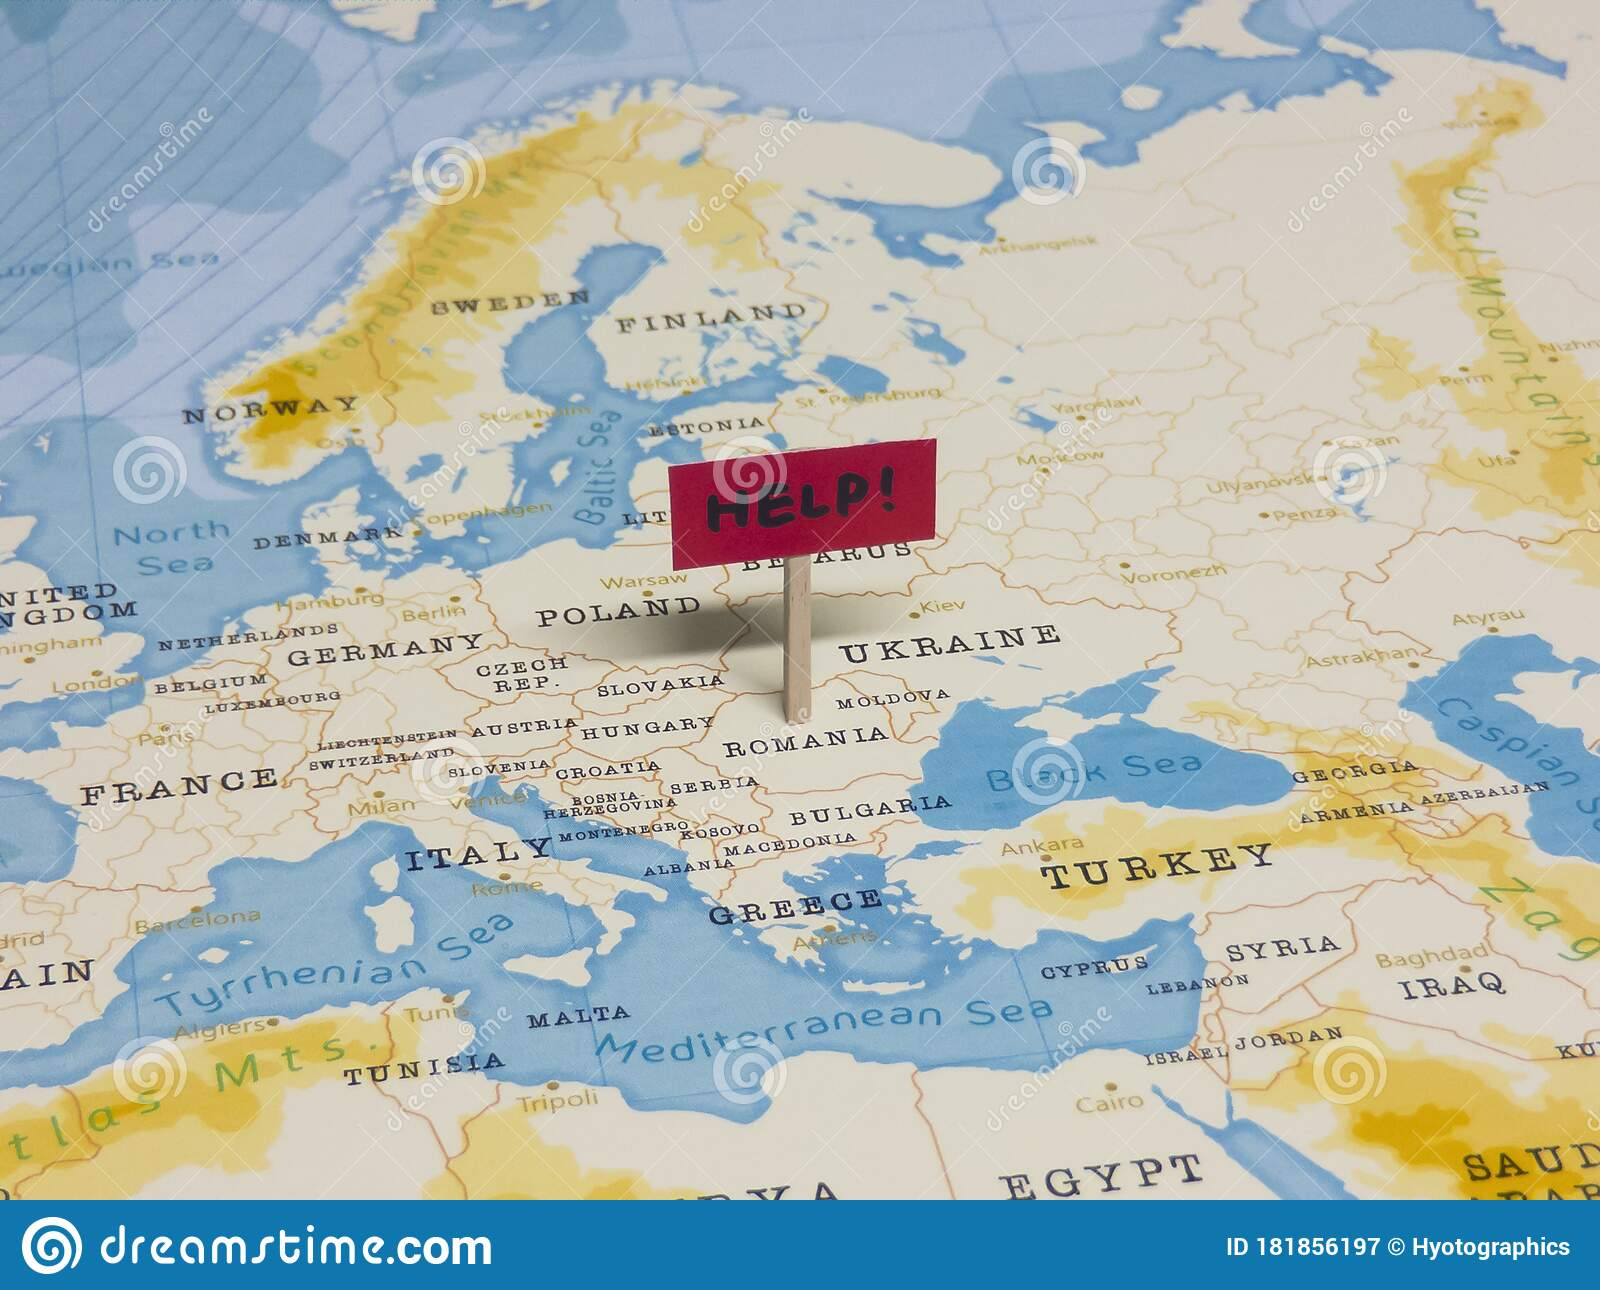 Help Sign With Pole On Romania Of The World Map Stock Image Image Of Contagion Assistance 181856197